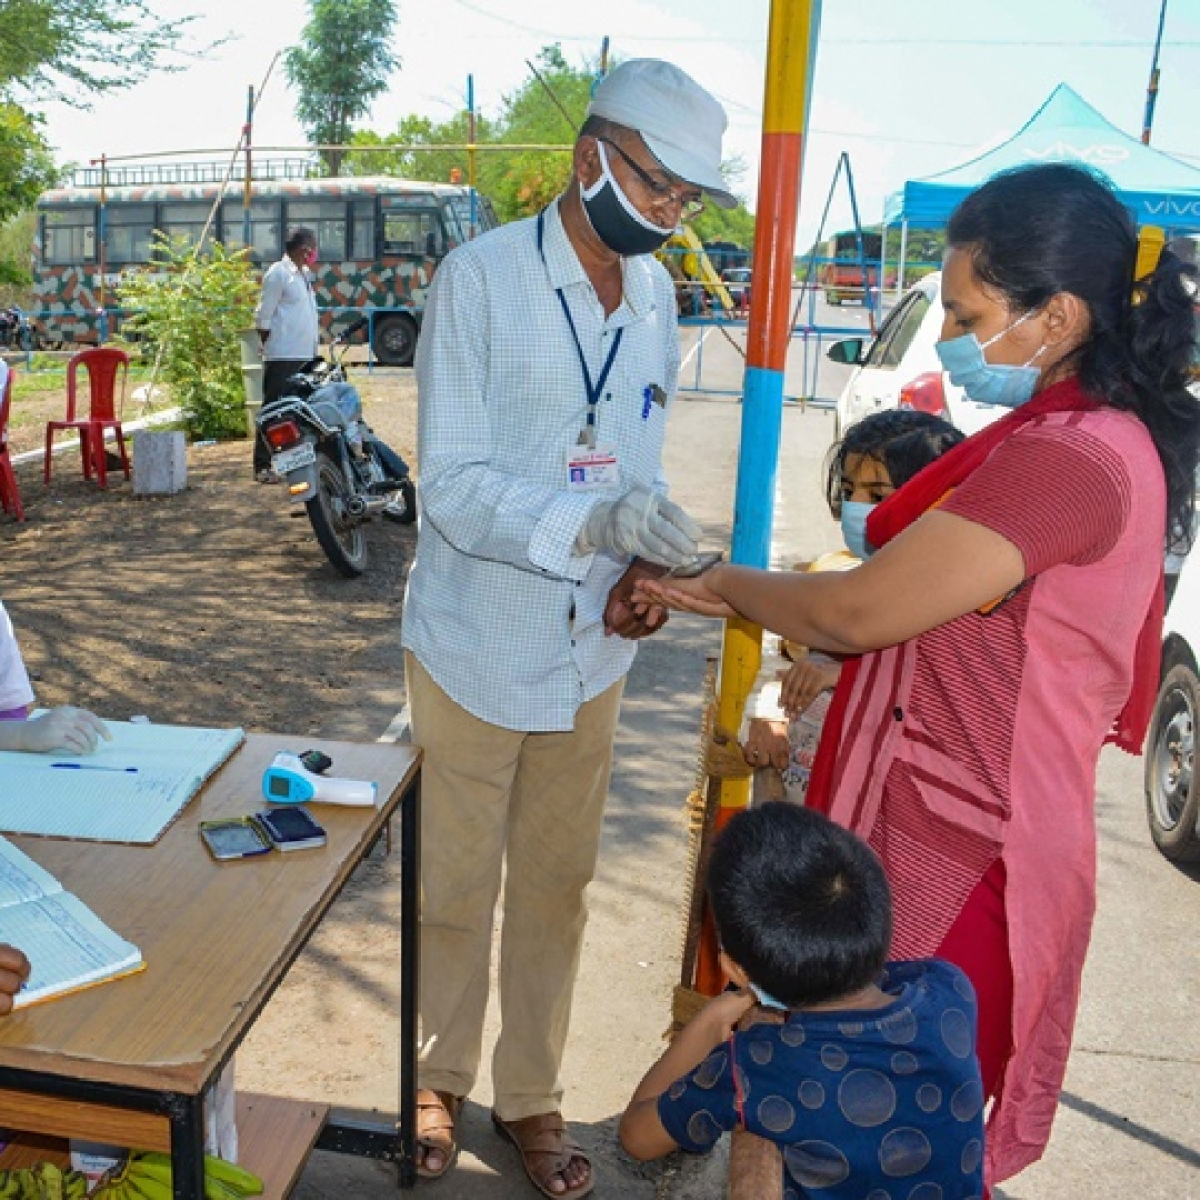 India's COVID-19 tally reaches 8,49,553 with 28,637 new cases, death toll climbs to 22,674